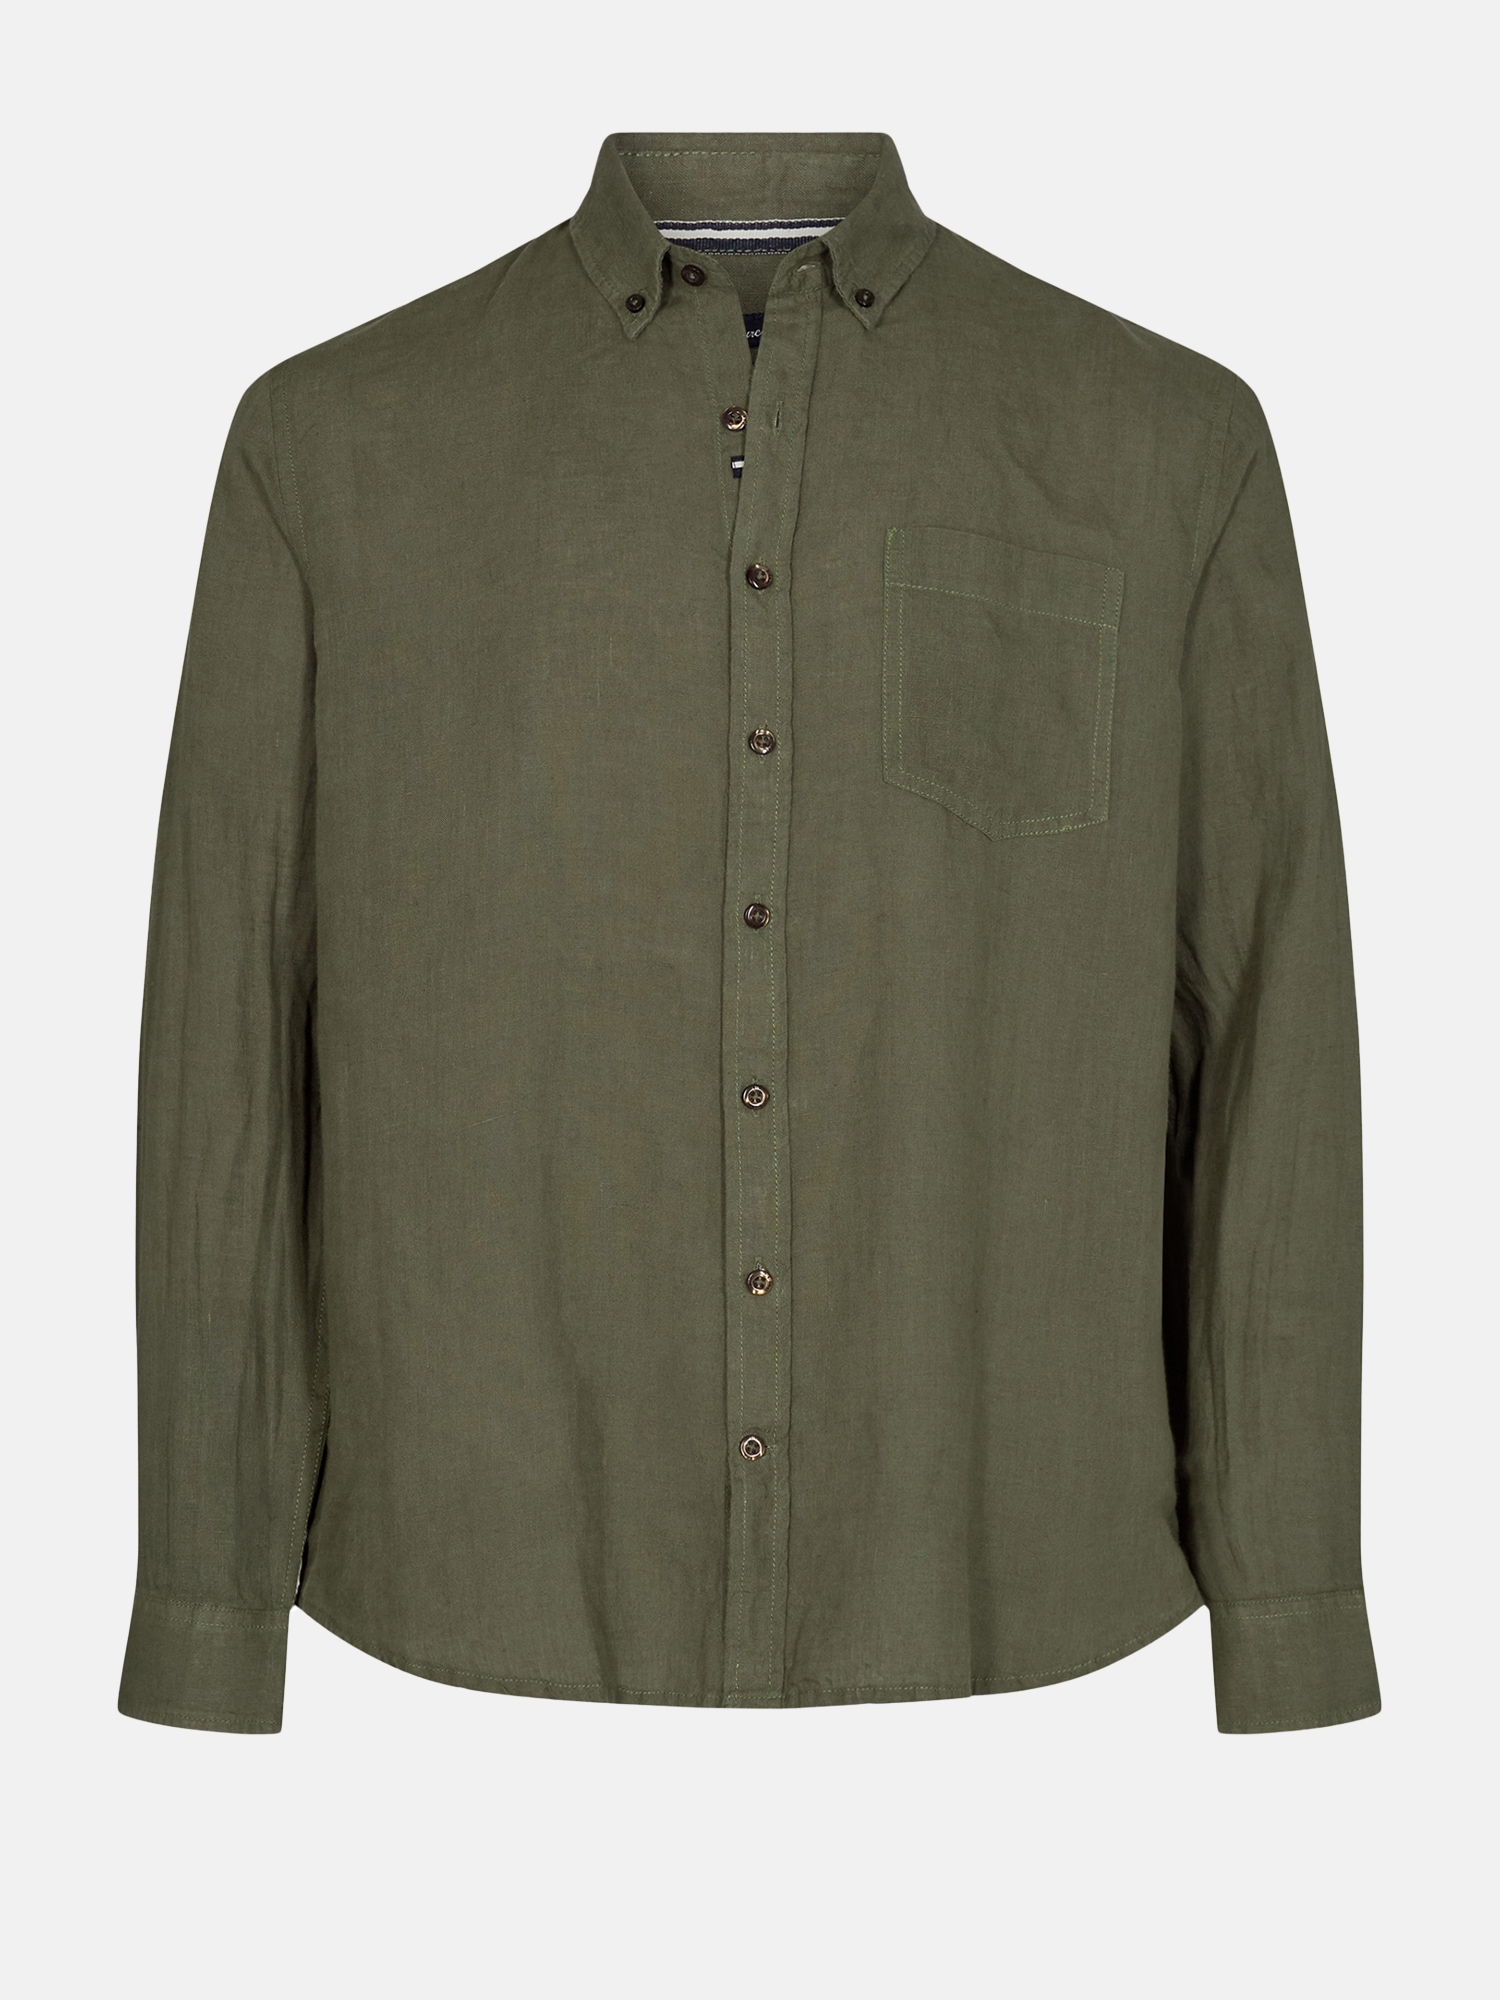 Andreas Linen Shirt